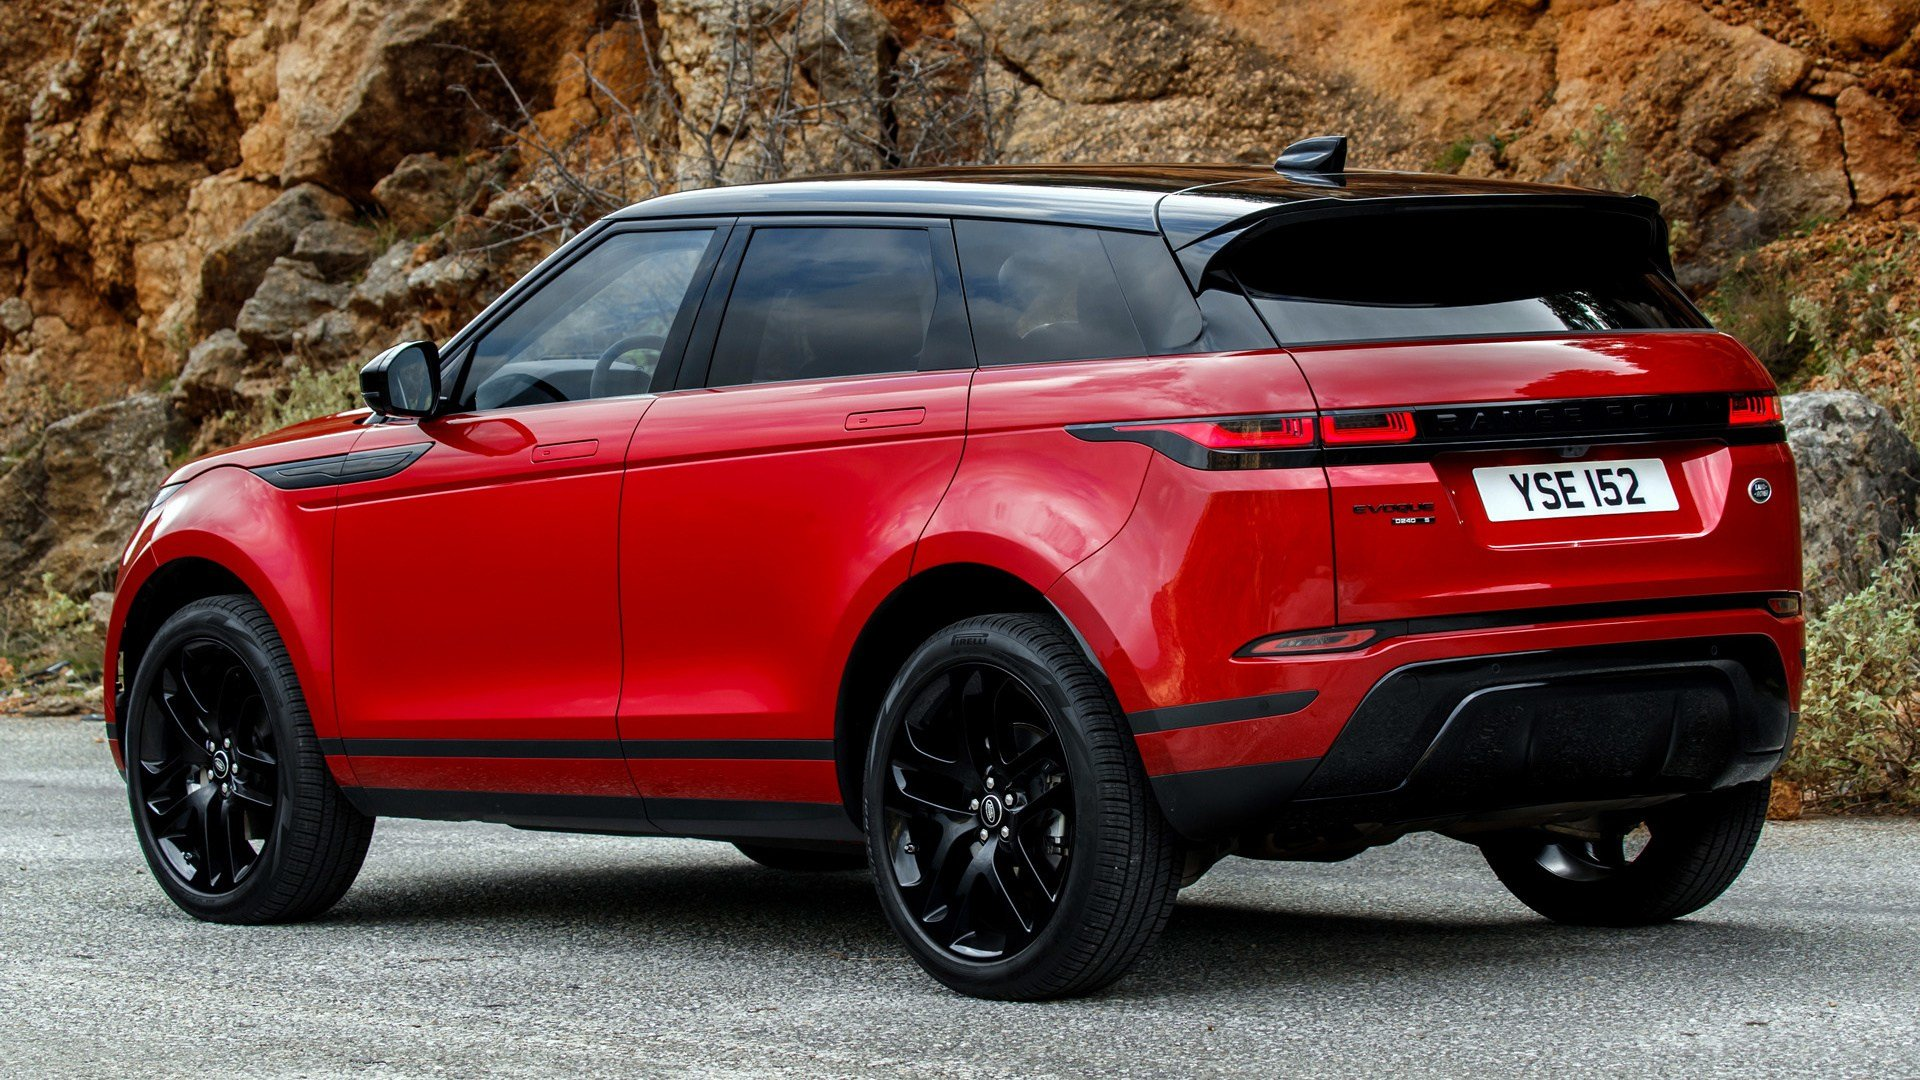 Latest 2019 Range Rover Evoque Black Pack Wallpapers And Hd Free Download